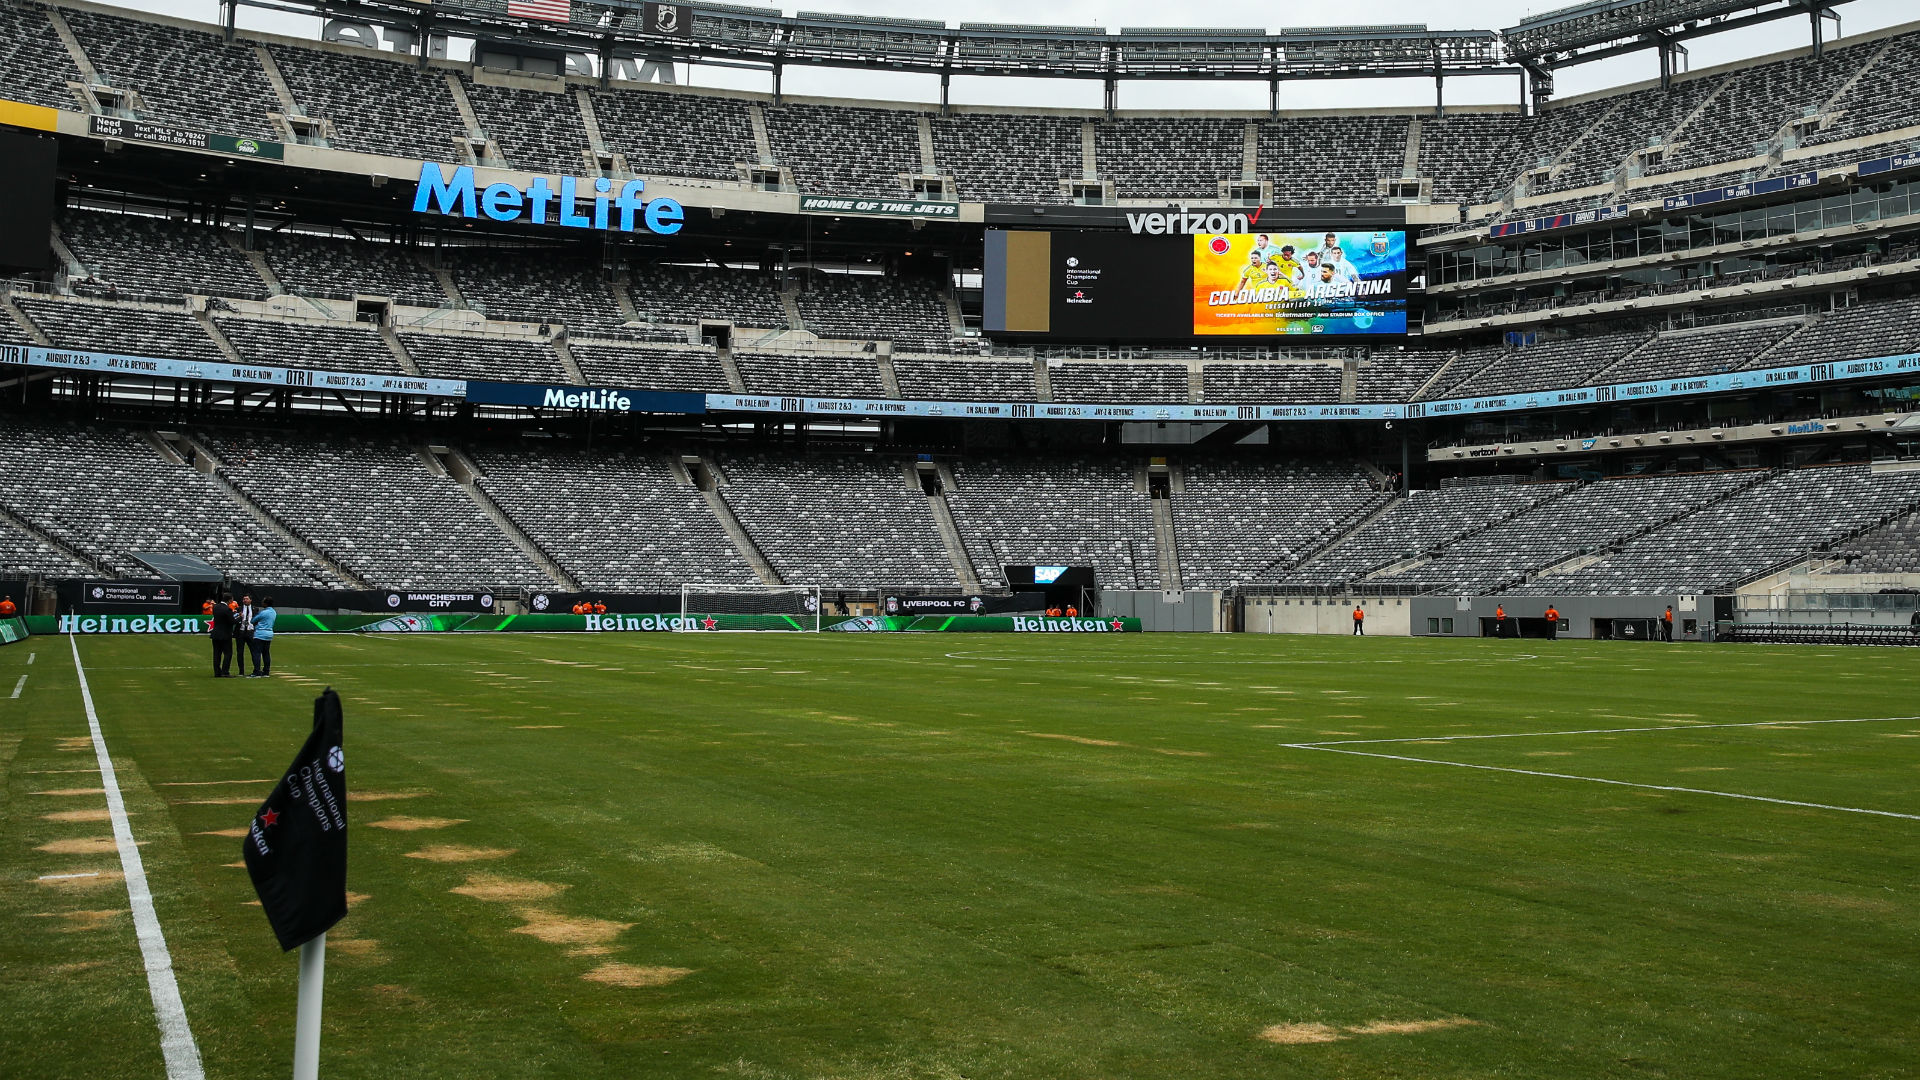 MetLife stadium pitch Liverpool Manchester City ICC 2018